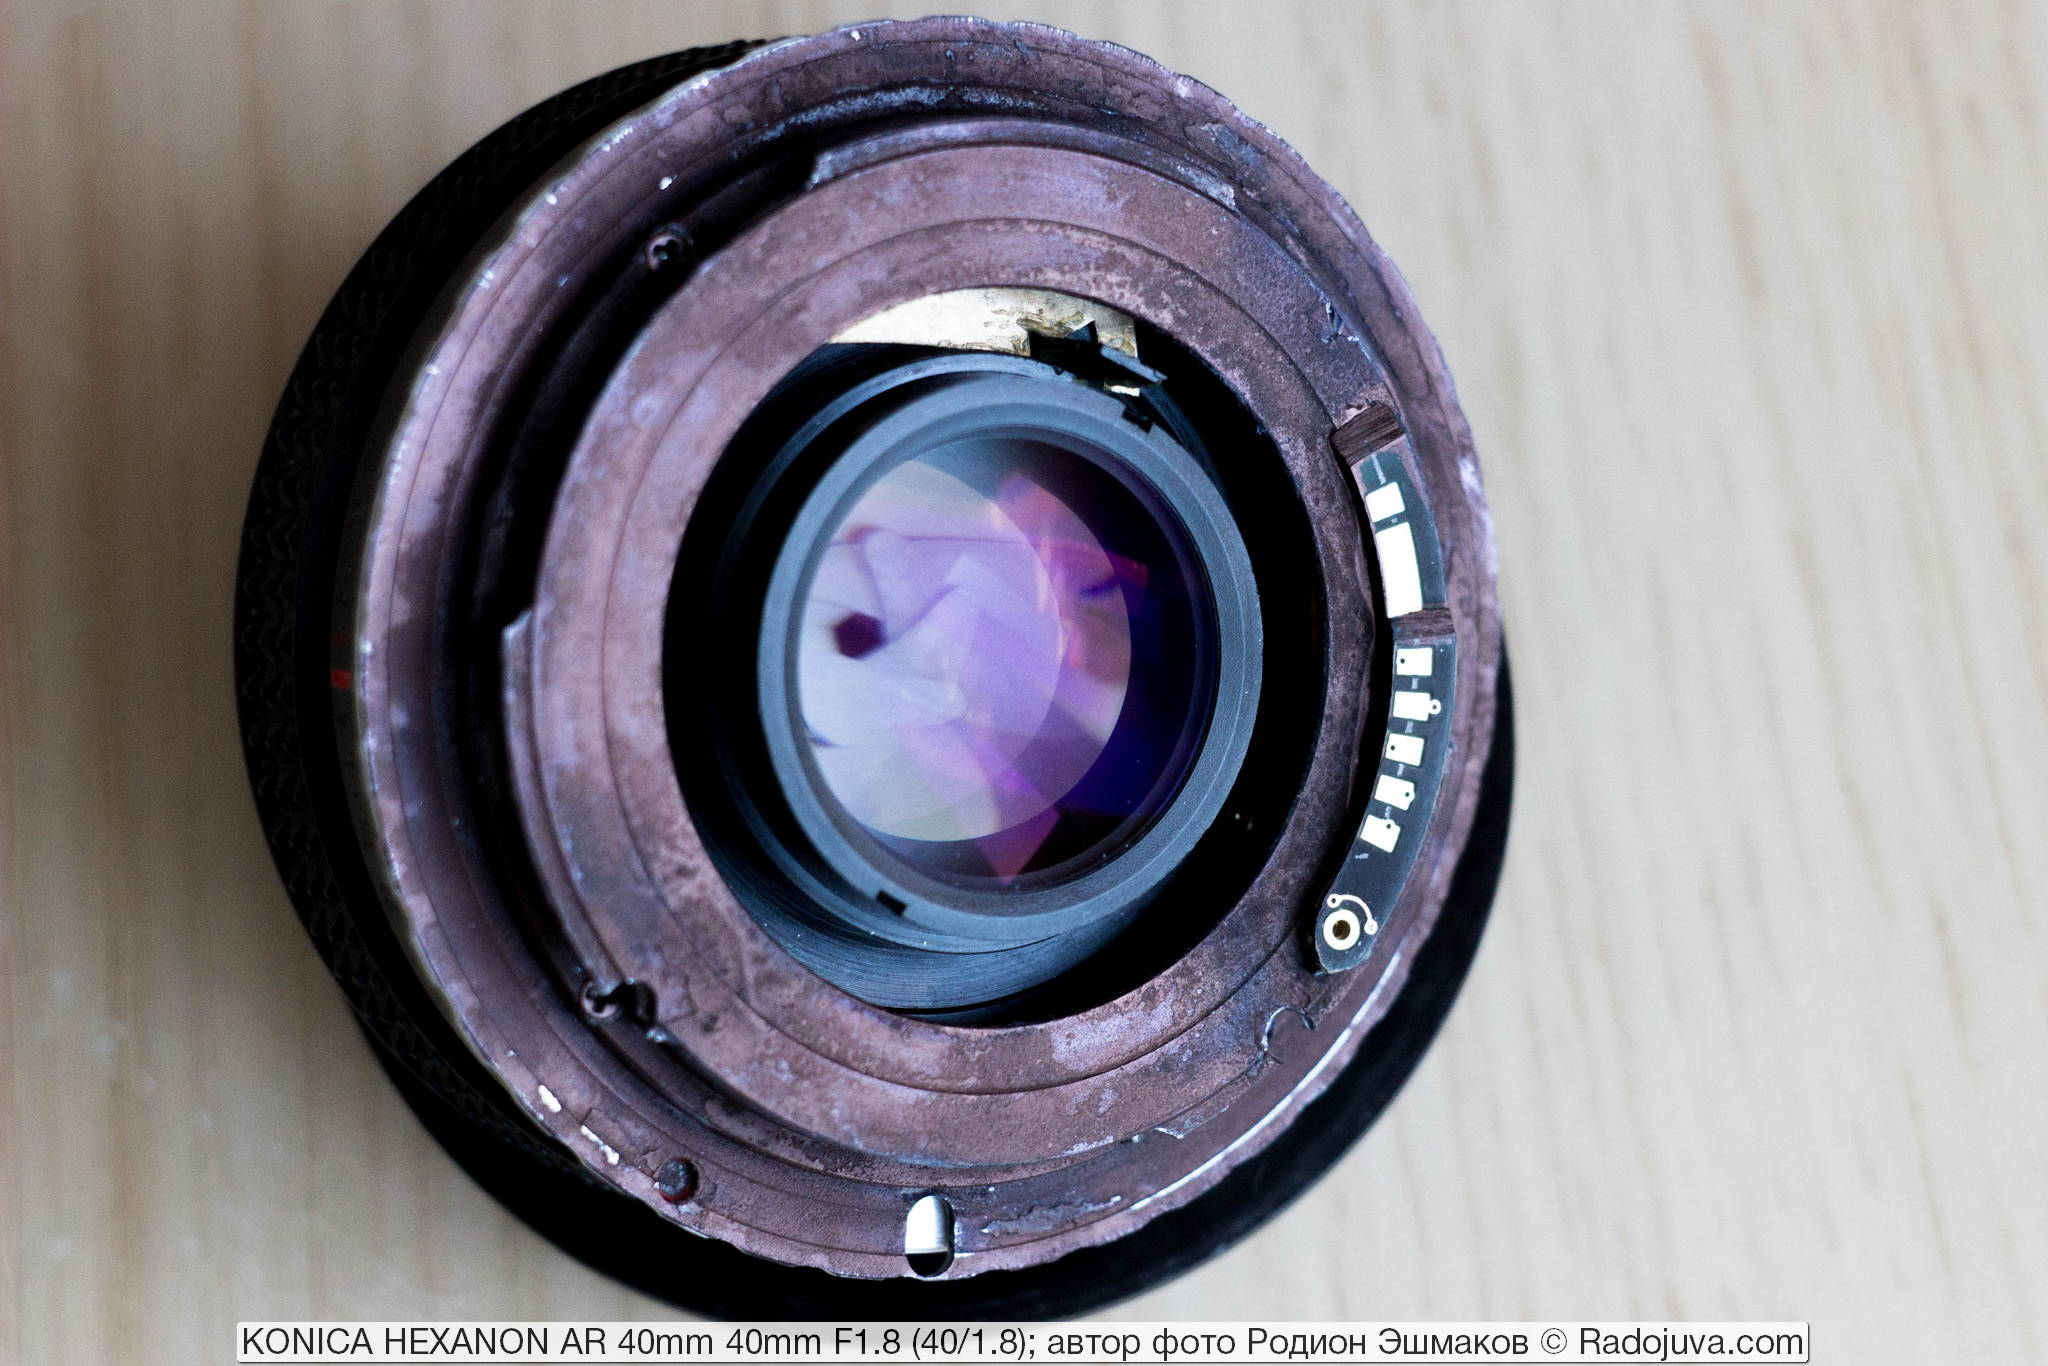 Rear view of the adapted lens. The plate of the brass diaphragm drive is visible.